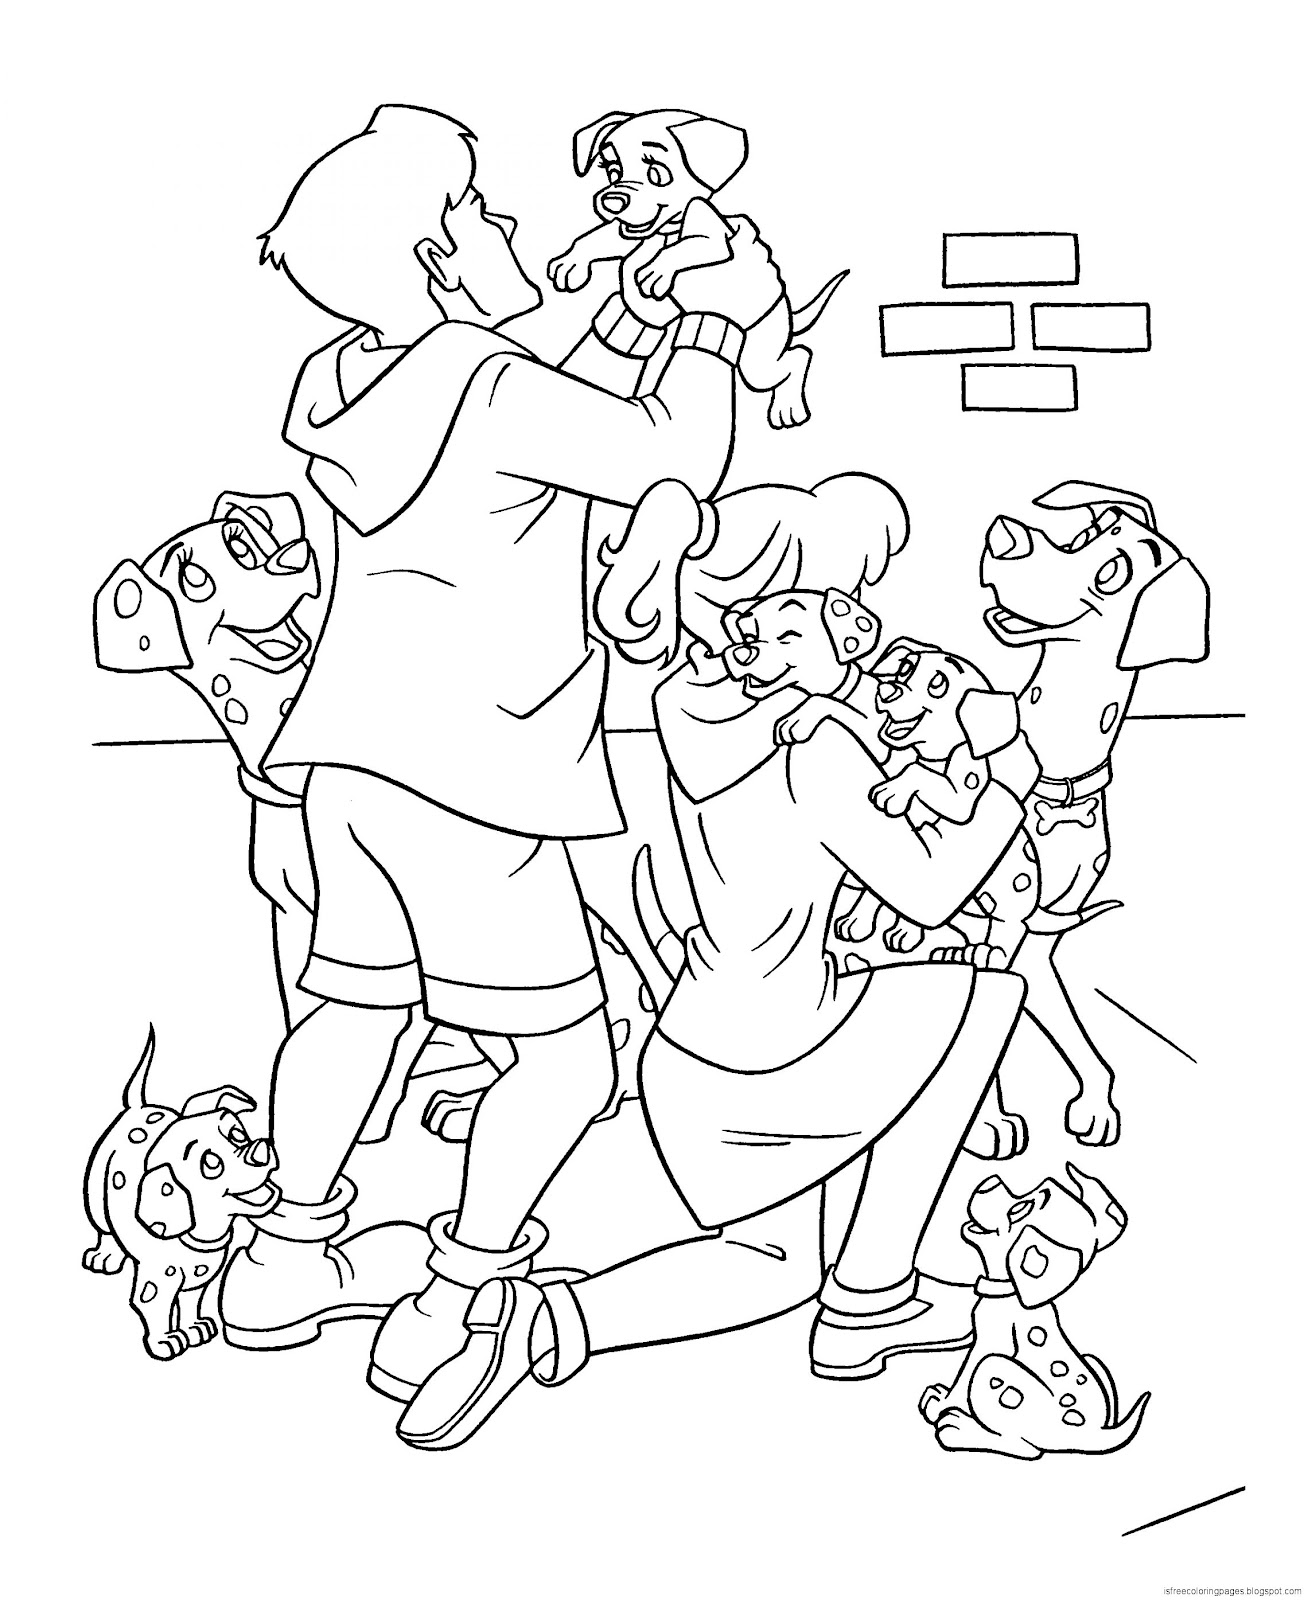 102 Dalmatians Coloring Pages